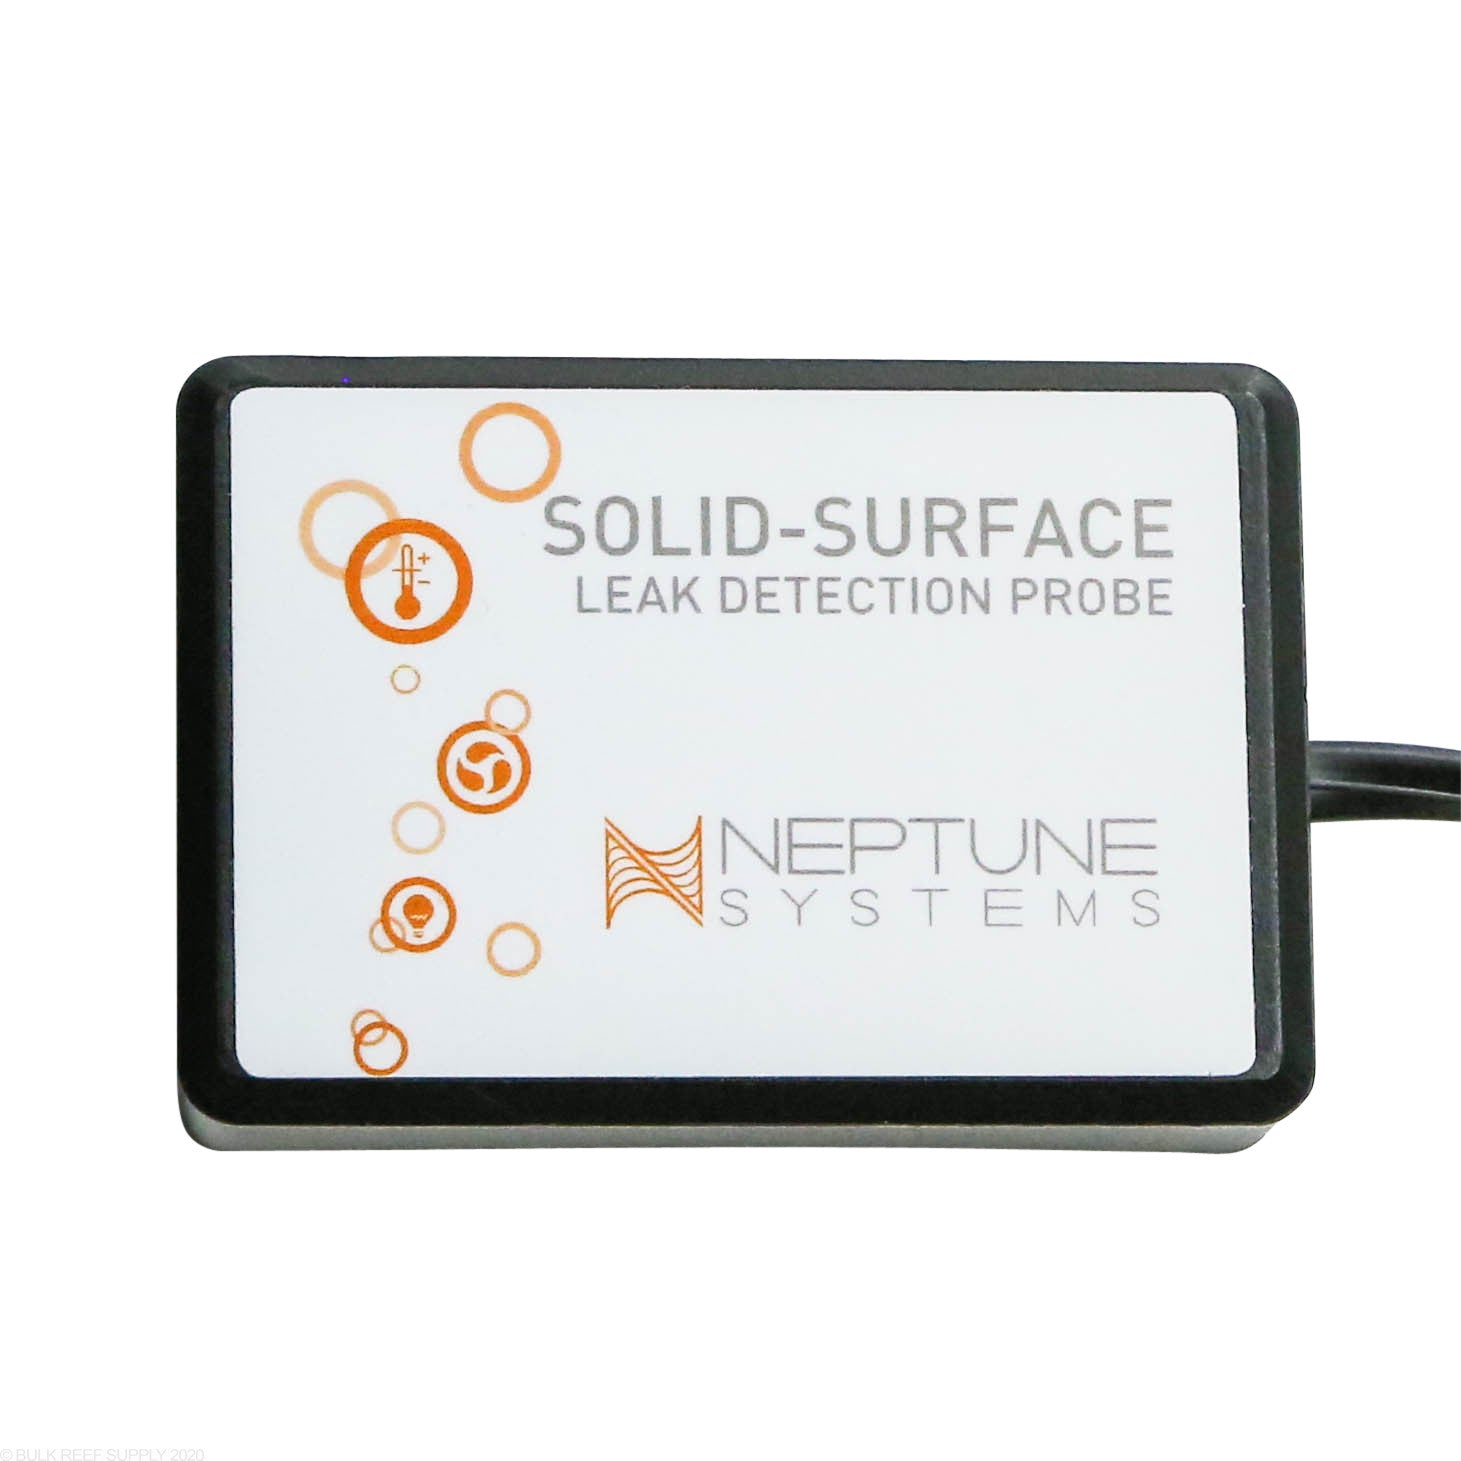 Advanced Leak Detection Solid-Surface Probe